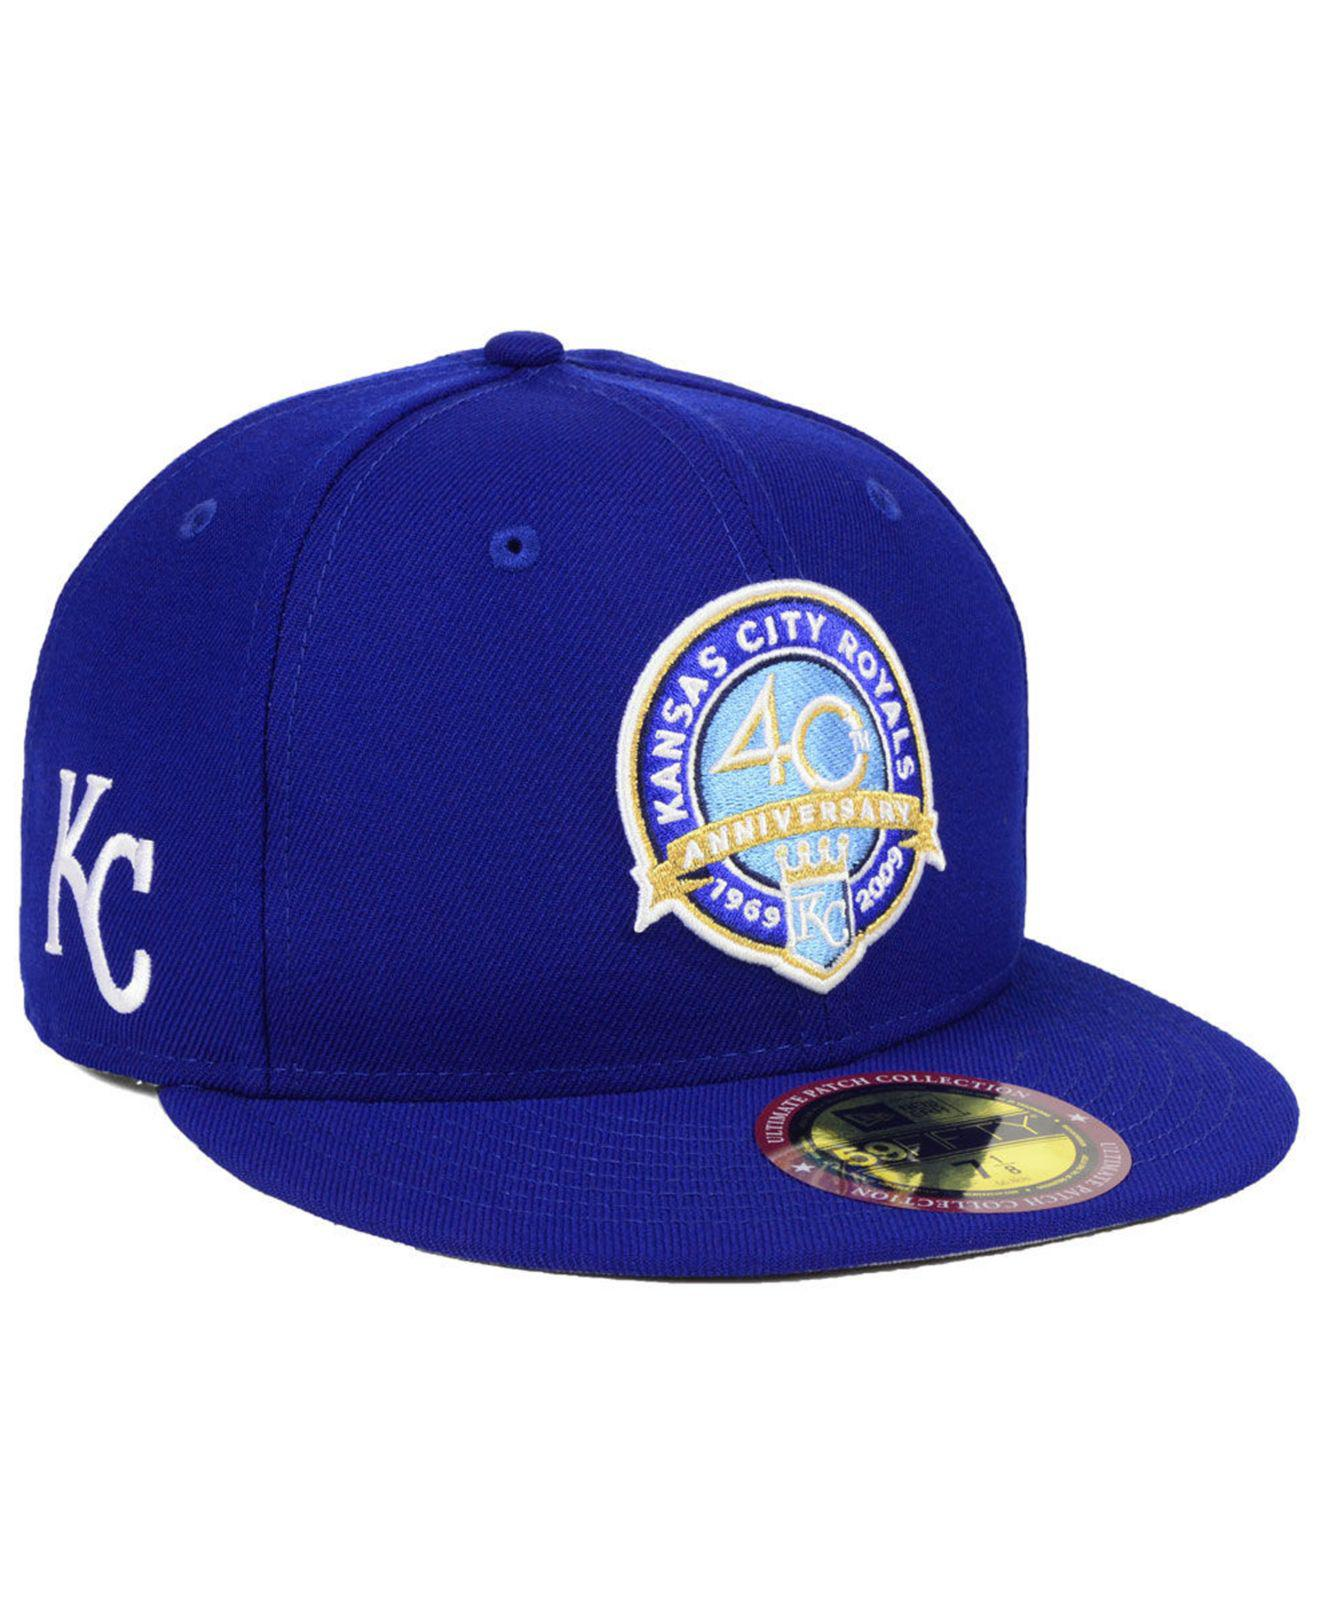 wholesale dealer 89007 58da1 ... Ultimate Patch Collection Front 59fifty Fitted Cap for Men -. View  fullscreen